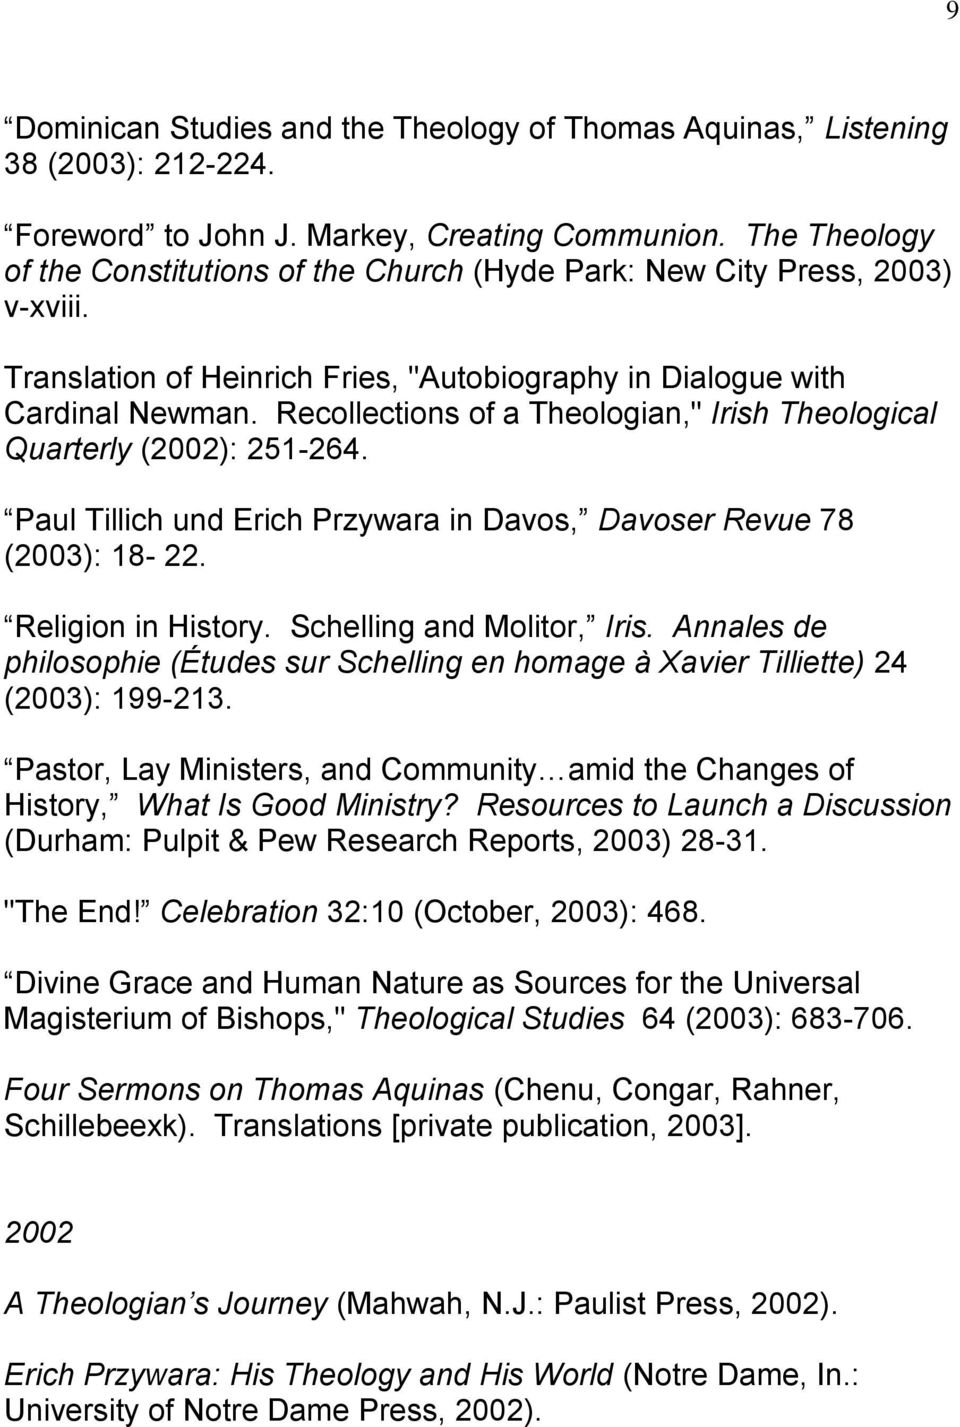 "Recollections of a Theologian,"" Irish Theological Quarterly (2002): 251-264. Paul Tillich und Erich Przywara in Davos, Davoser Revue 78 (2003): 18-22. Religion in History. Schelling and Molitor, Iris."